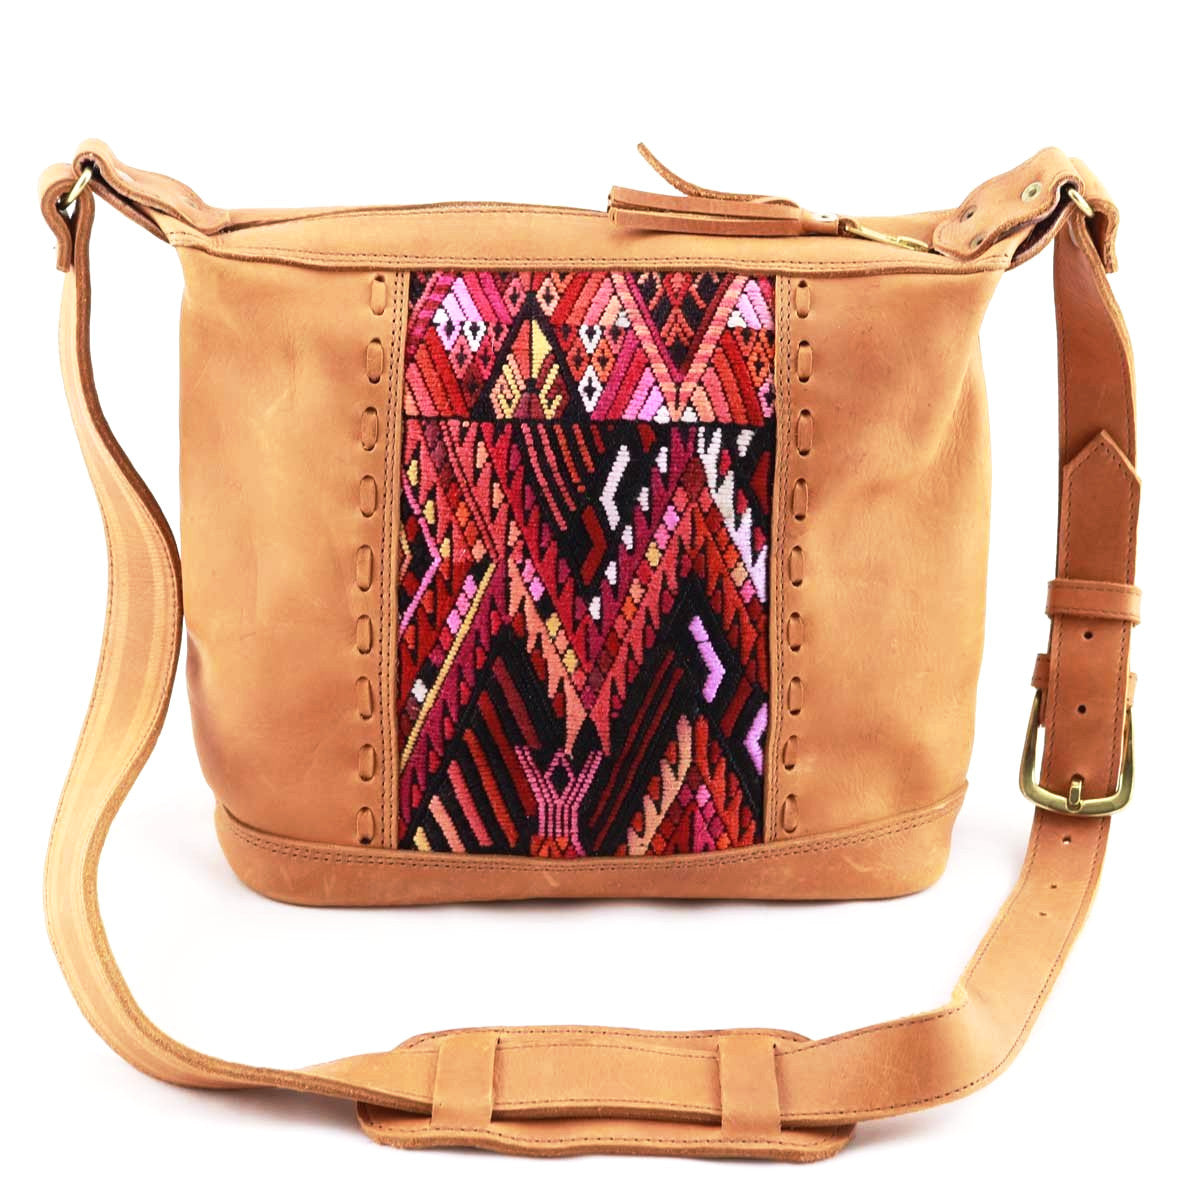 Michella Textile Tan Leather Mini Bag - etnico culture